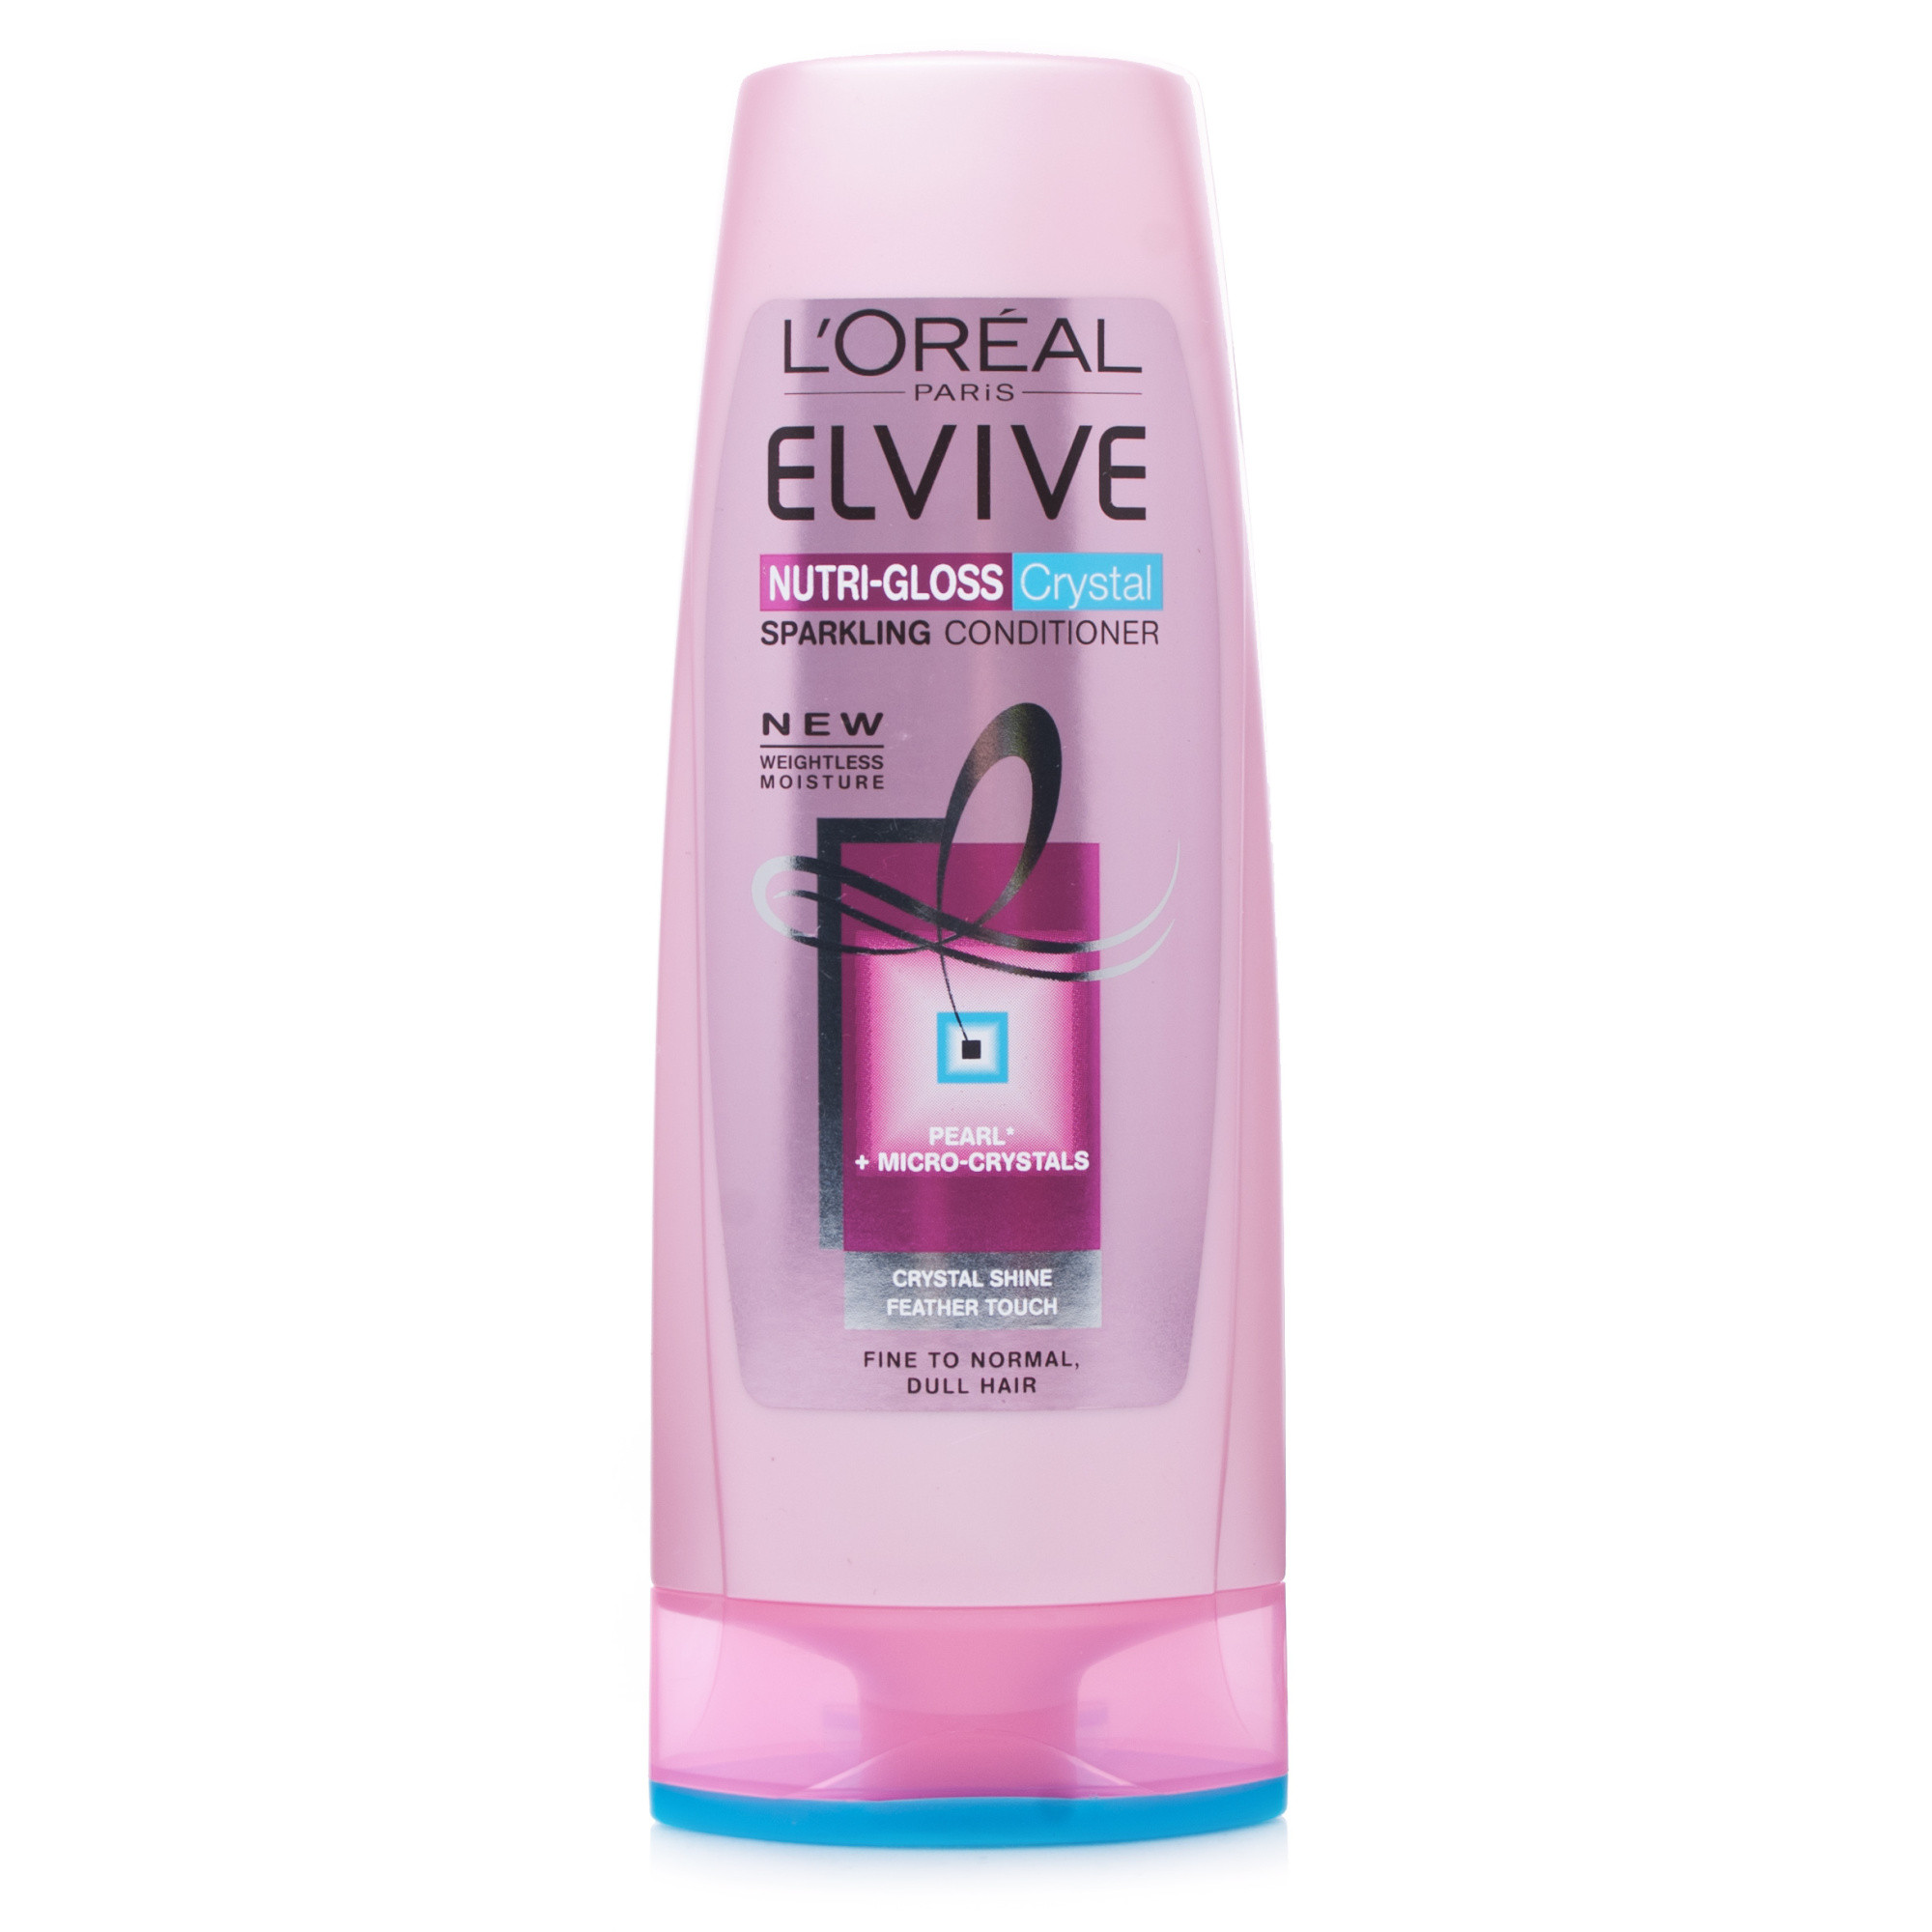 L'Oreal Elvive Nutri-Gloss Crystal Conditioner